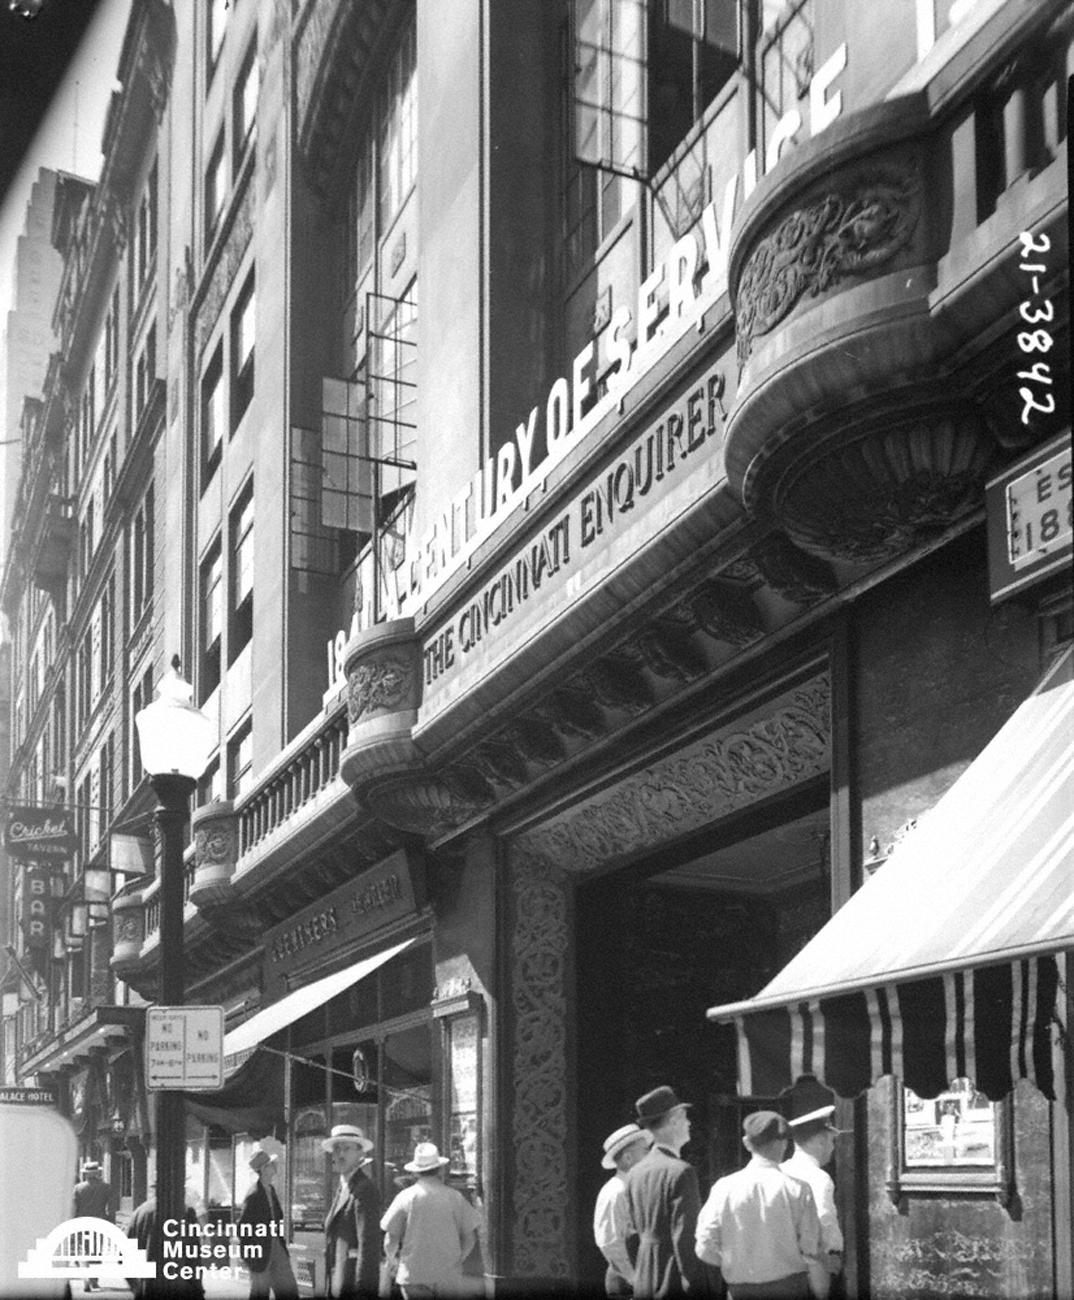 Aside from his notable Queen City photography, Paul Briol was also a Cincinnati Enquirer photographer/columnist, a Cincinnati socialite, and a book shop manager at various points in his life. Pictured is the Cincinnati Enquirer Building sometime in the mid-1900s. / Image: Paul Briol, accessed via the Cincinnati Museum Center History Library and Archives // Published: 2.16.19